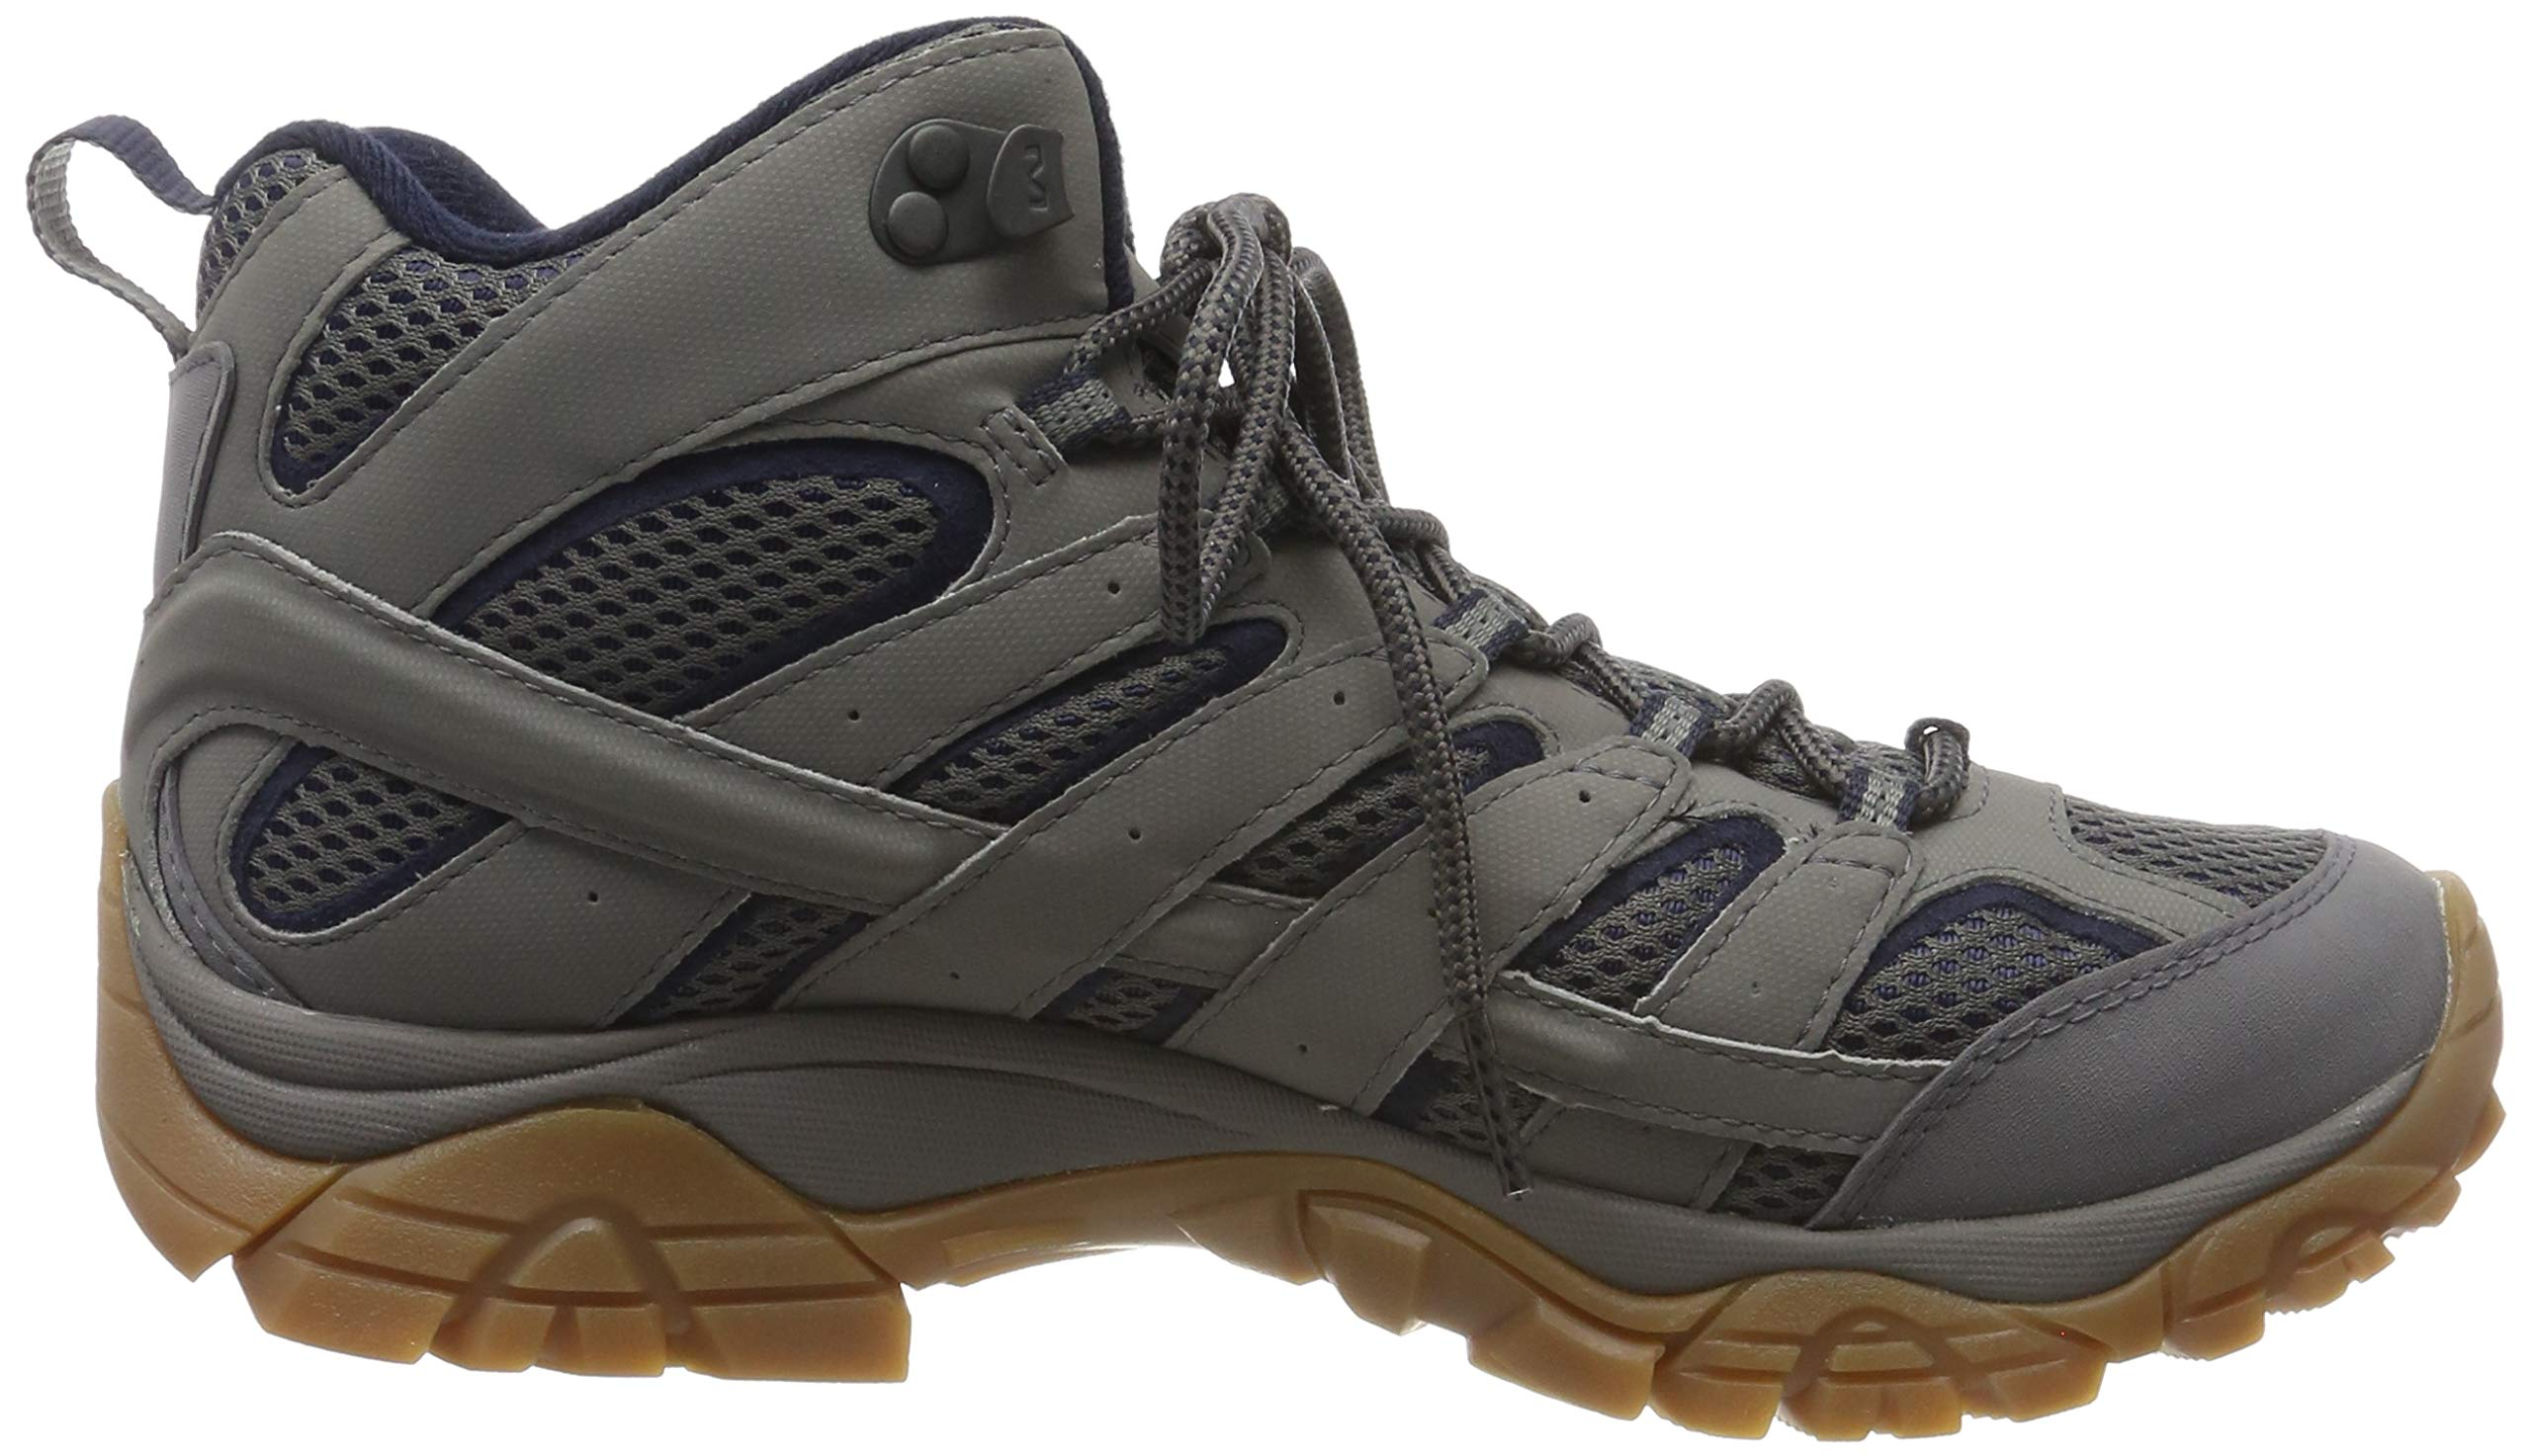 Merrell Men's Moab 2 Mid Gore-tex High Rise Hiking Boots 6